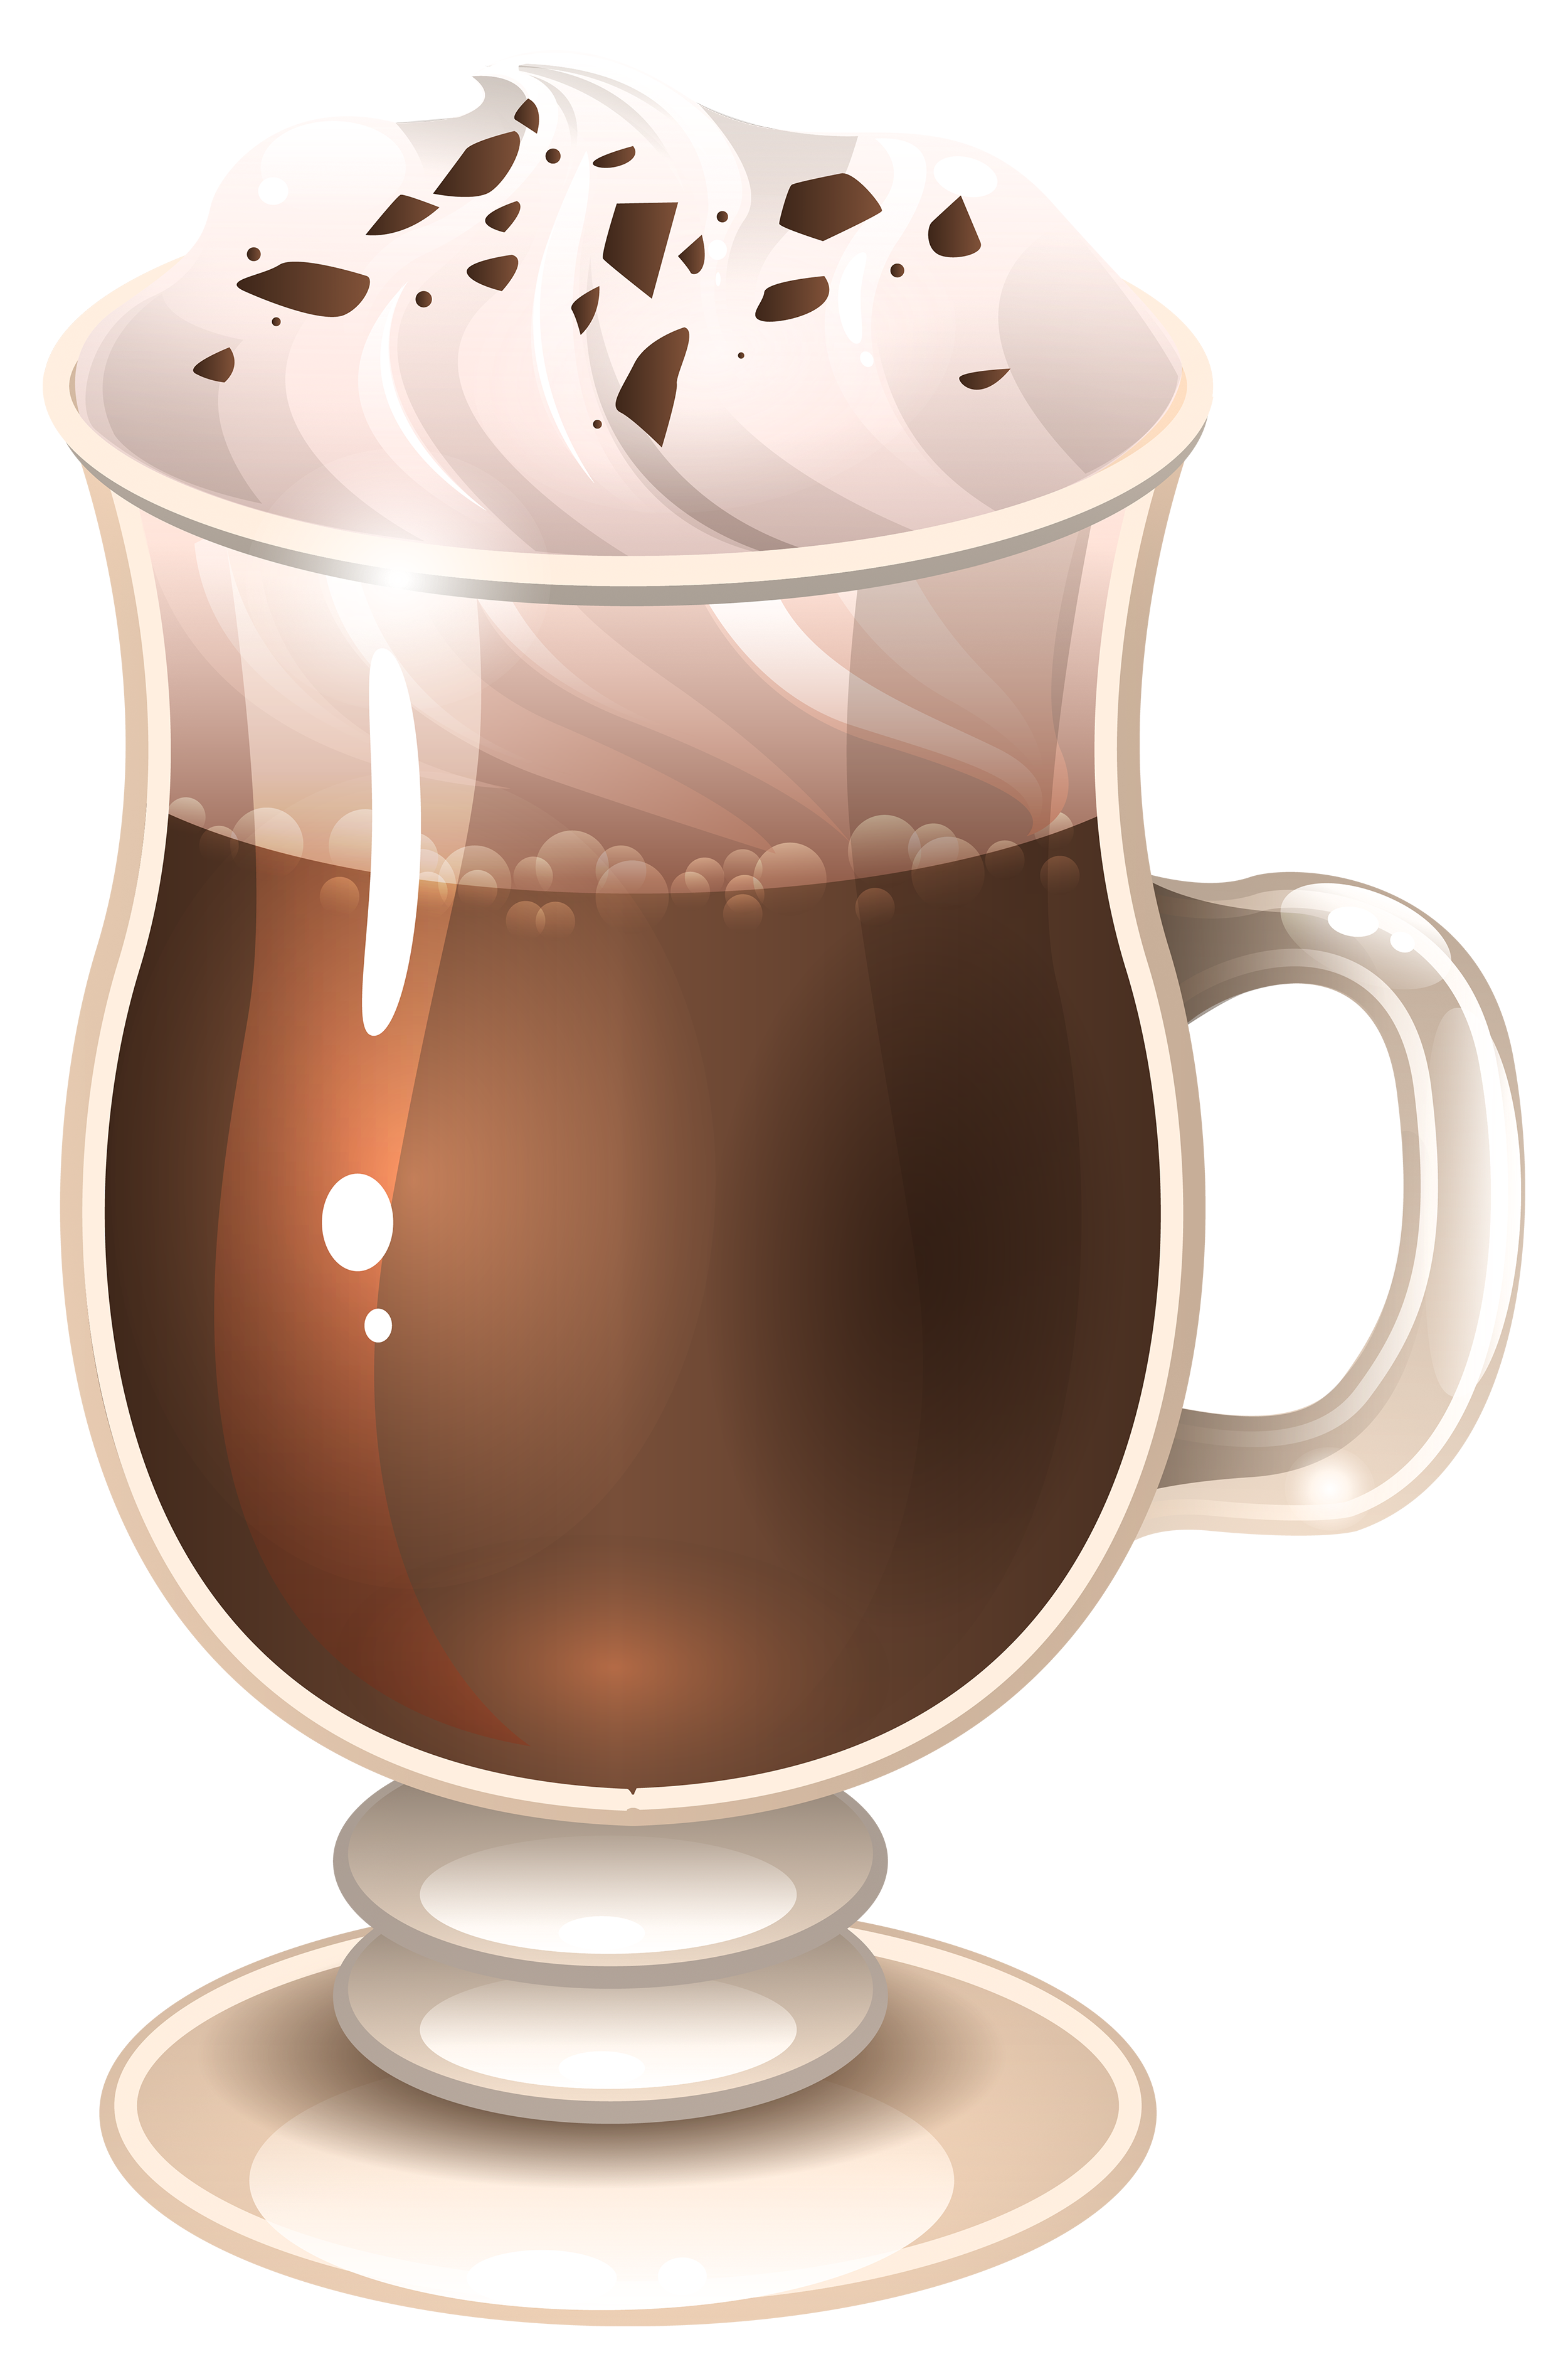 clip art black and white download Irish coffee clipart. Glass of latte png